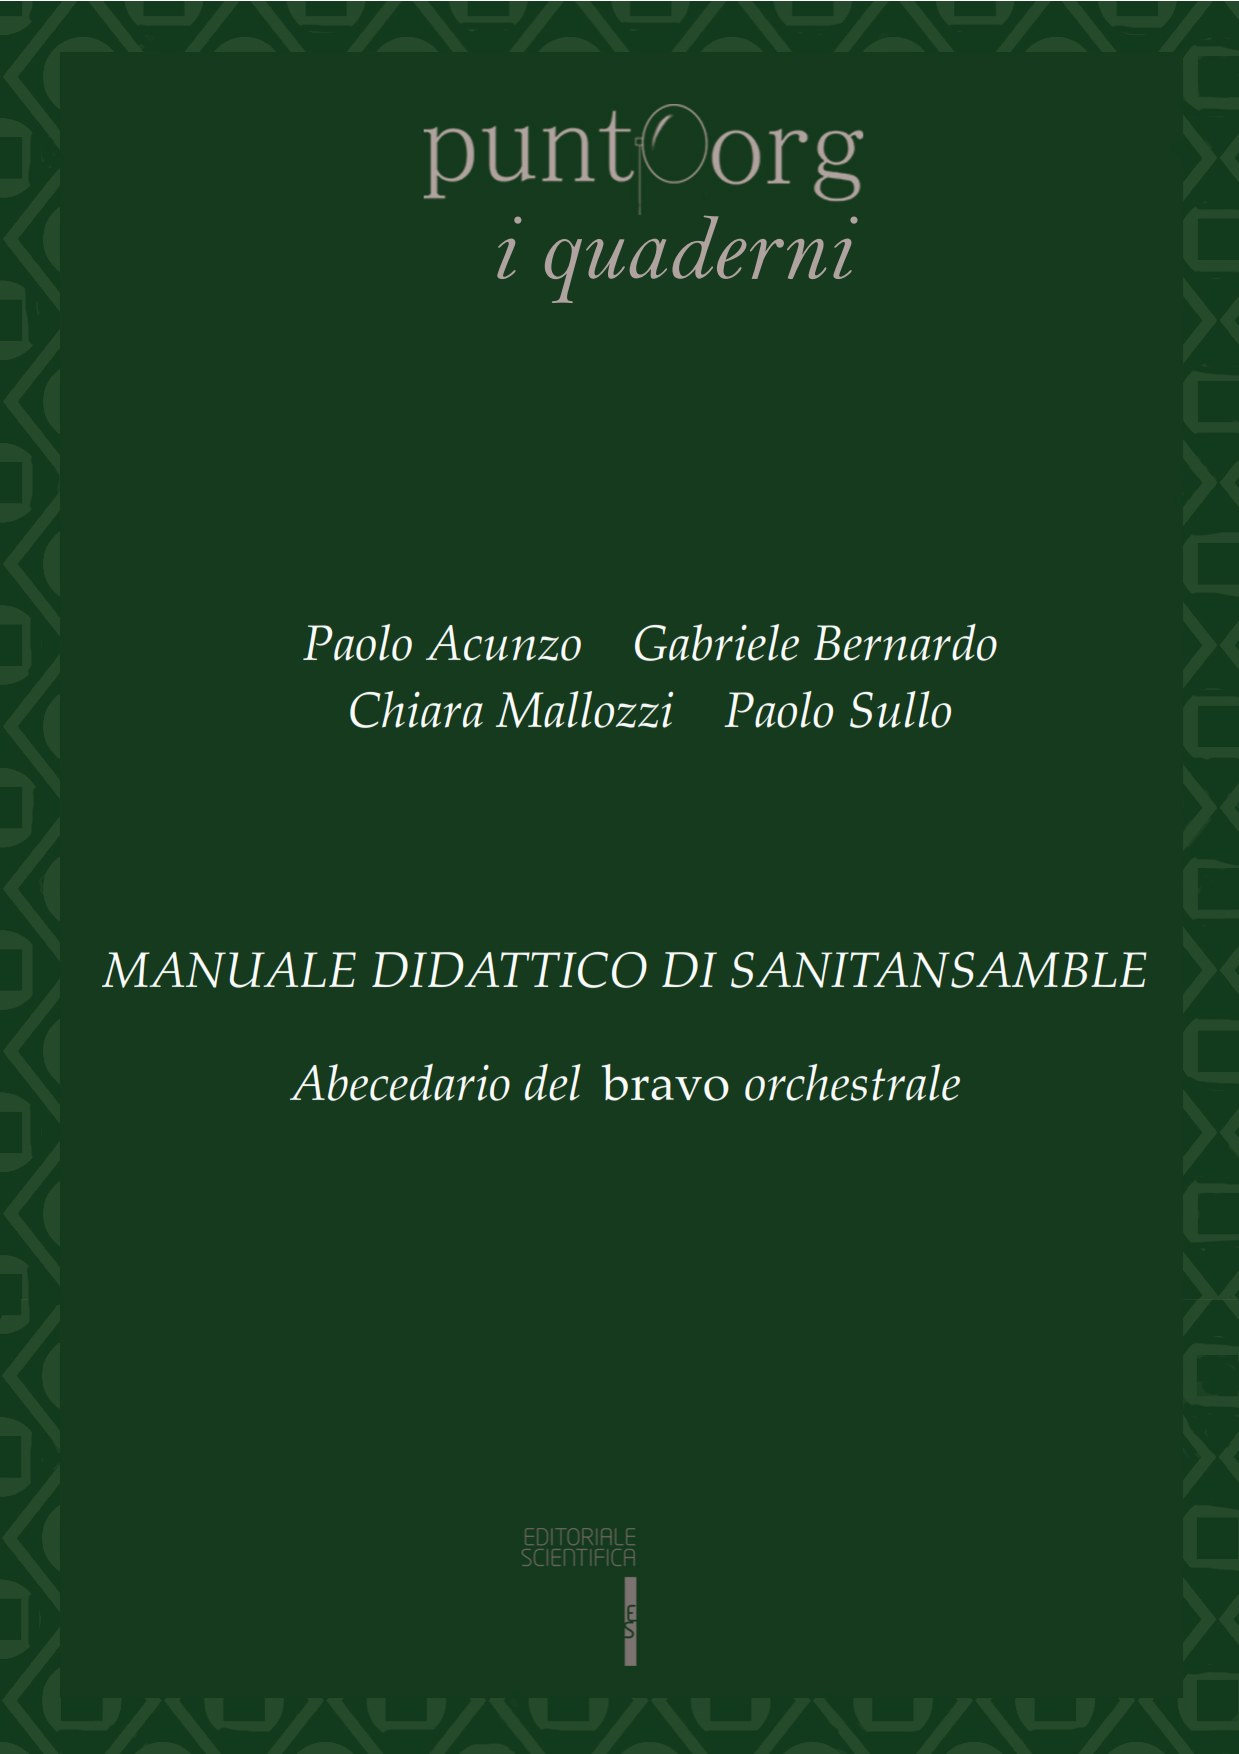 Quaderno Sanitansamble 001